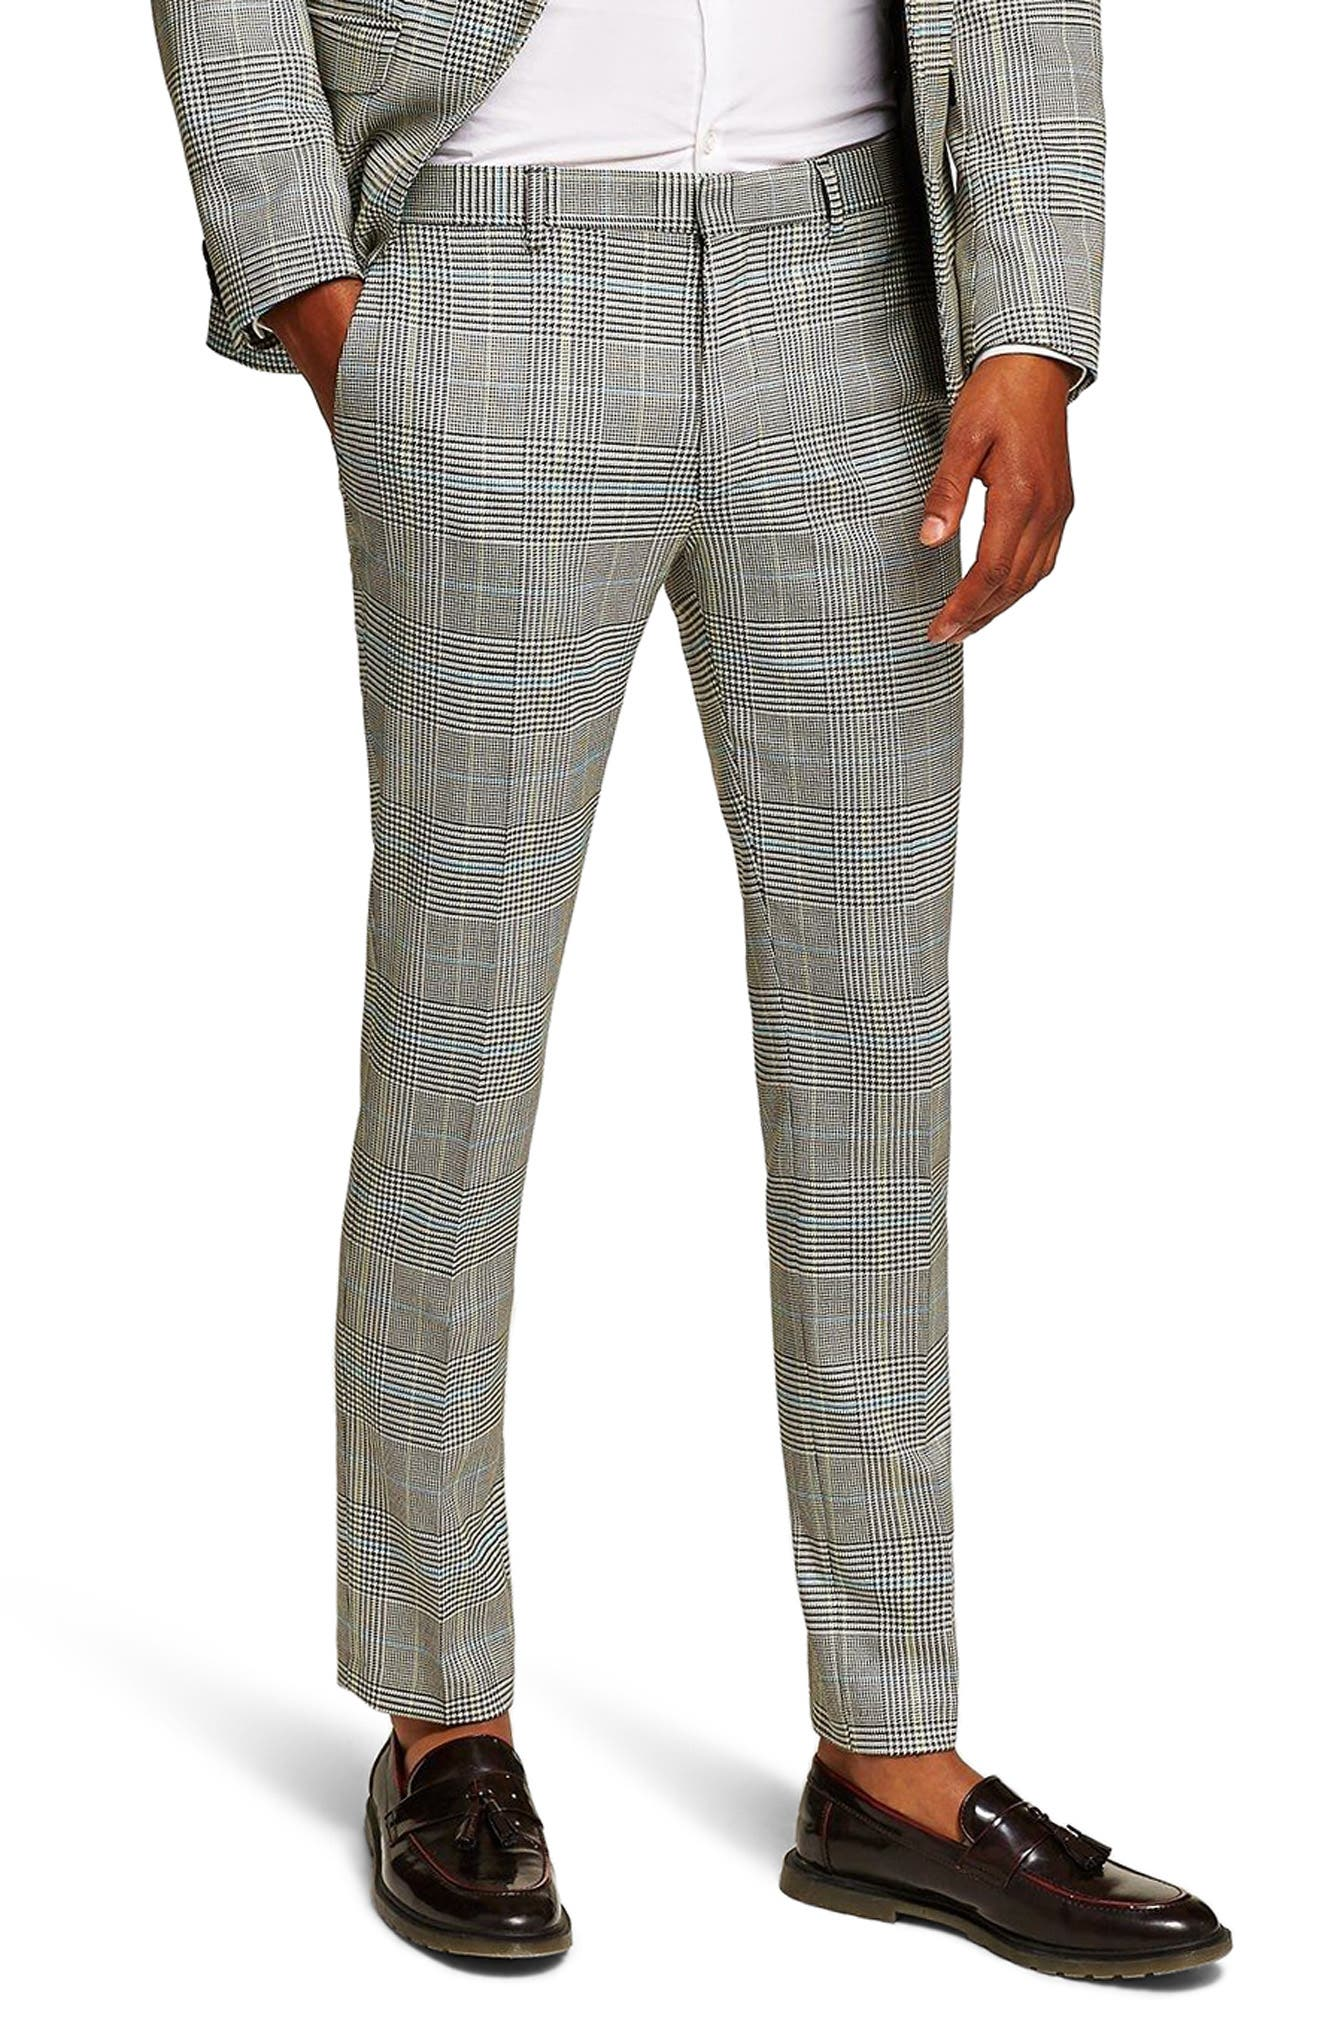 Skinny Fit Houndstooth Suit Trousers,                             Main thumbnail 1, color,                             GREY MULTI